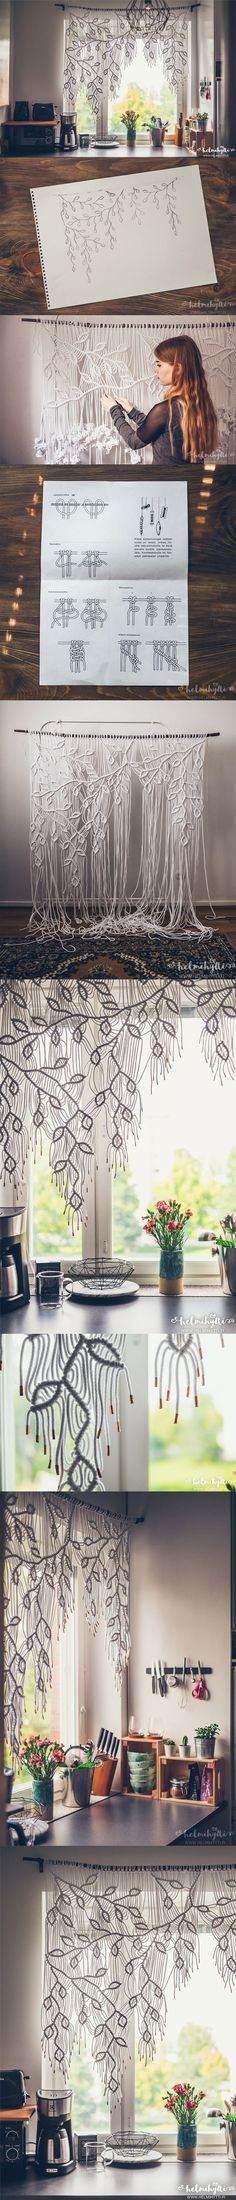 Home Decorating Ideas Bohemian DIY macrame curtain with asymmetric pattern tutorial. Only one knot type used! C… Home Decorating Ideas Bohemian DIY macrame curtain with asymmetric pattern tutorial. Only one knot type used! Easy Home Decor, Handmade Home Decor, Handmade Ideas, Diy Para A Casa, Budget Home Decorating, Decorating Ideas, Decor Ideas, Bohemian Decorating, Bohemian Kitchen